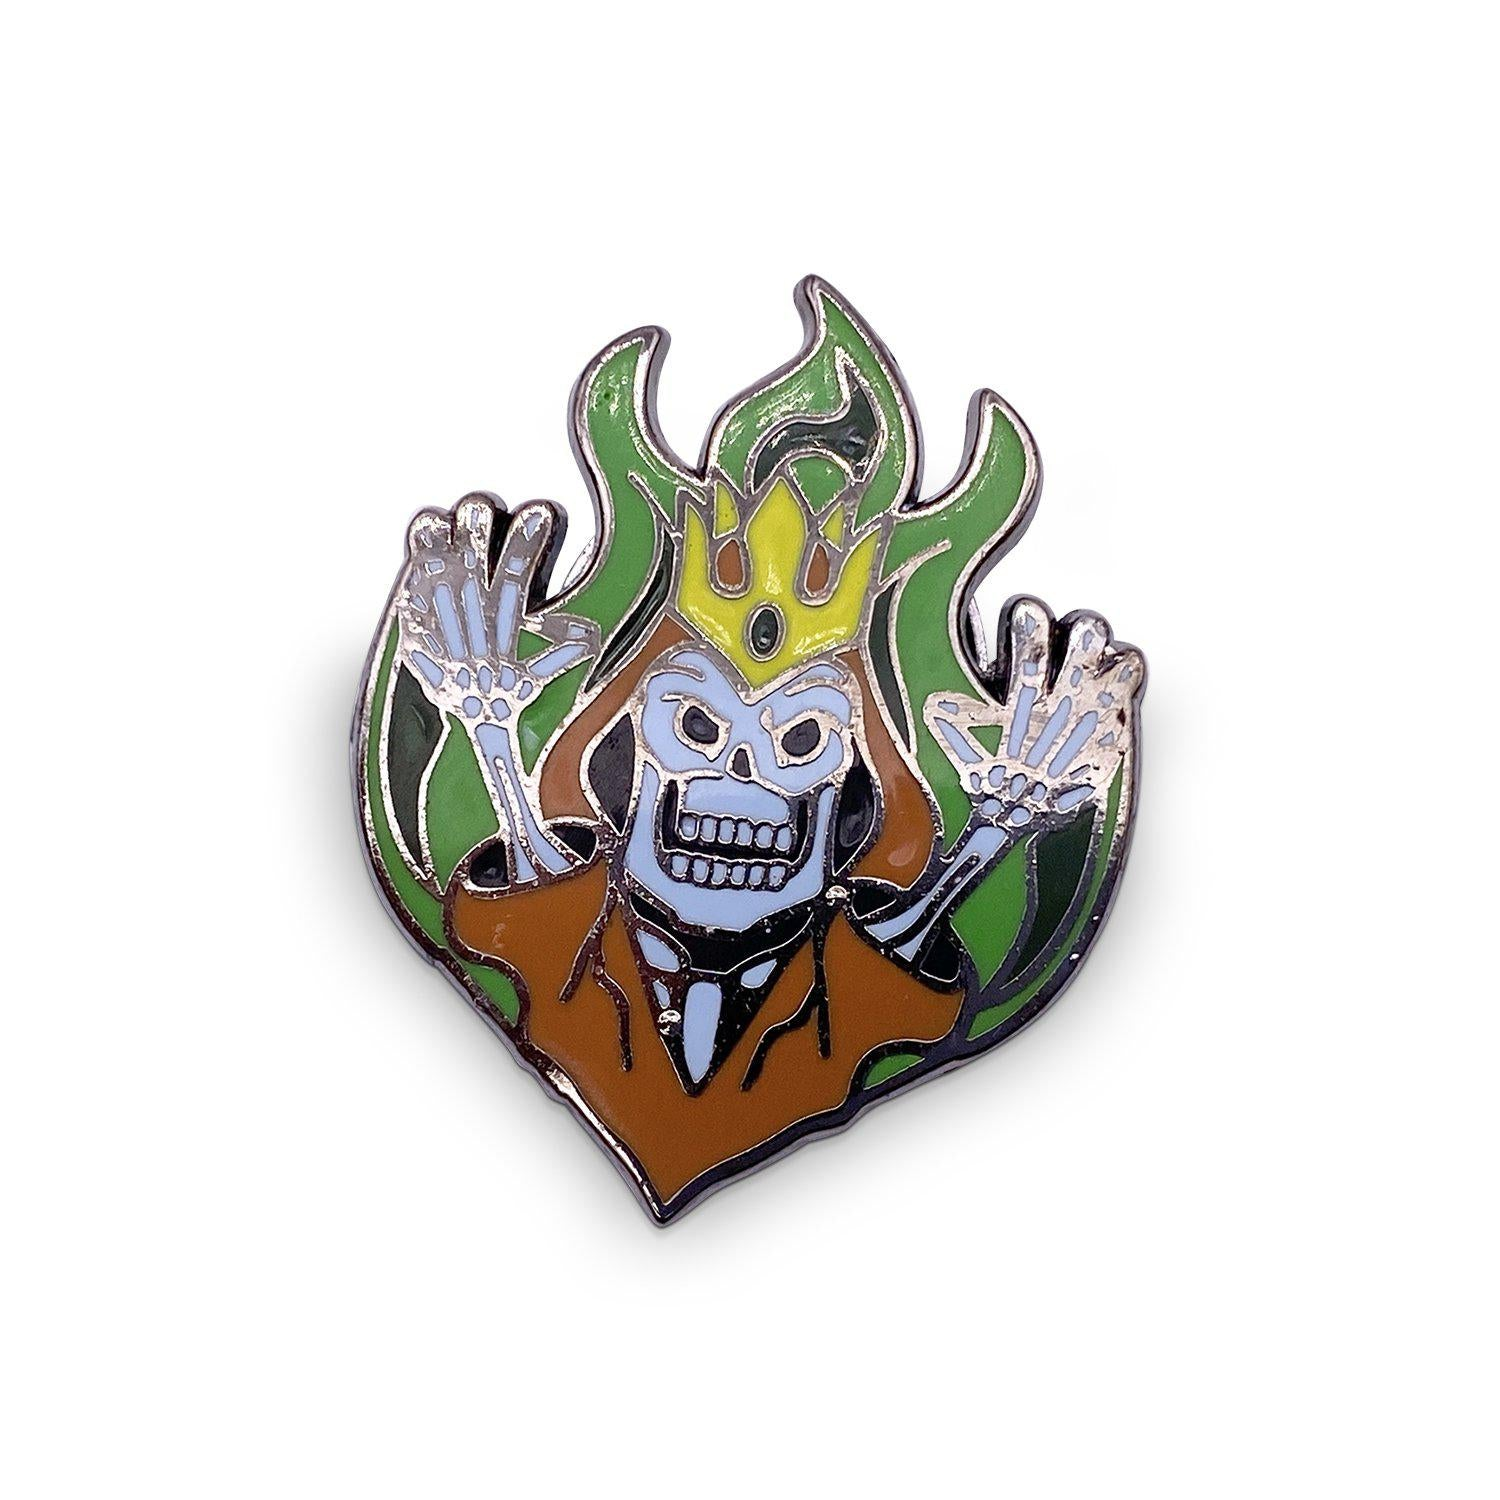 Lich - Hard Enamel Adventure Dice Pin Metal by Norse Foundry